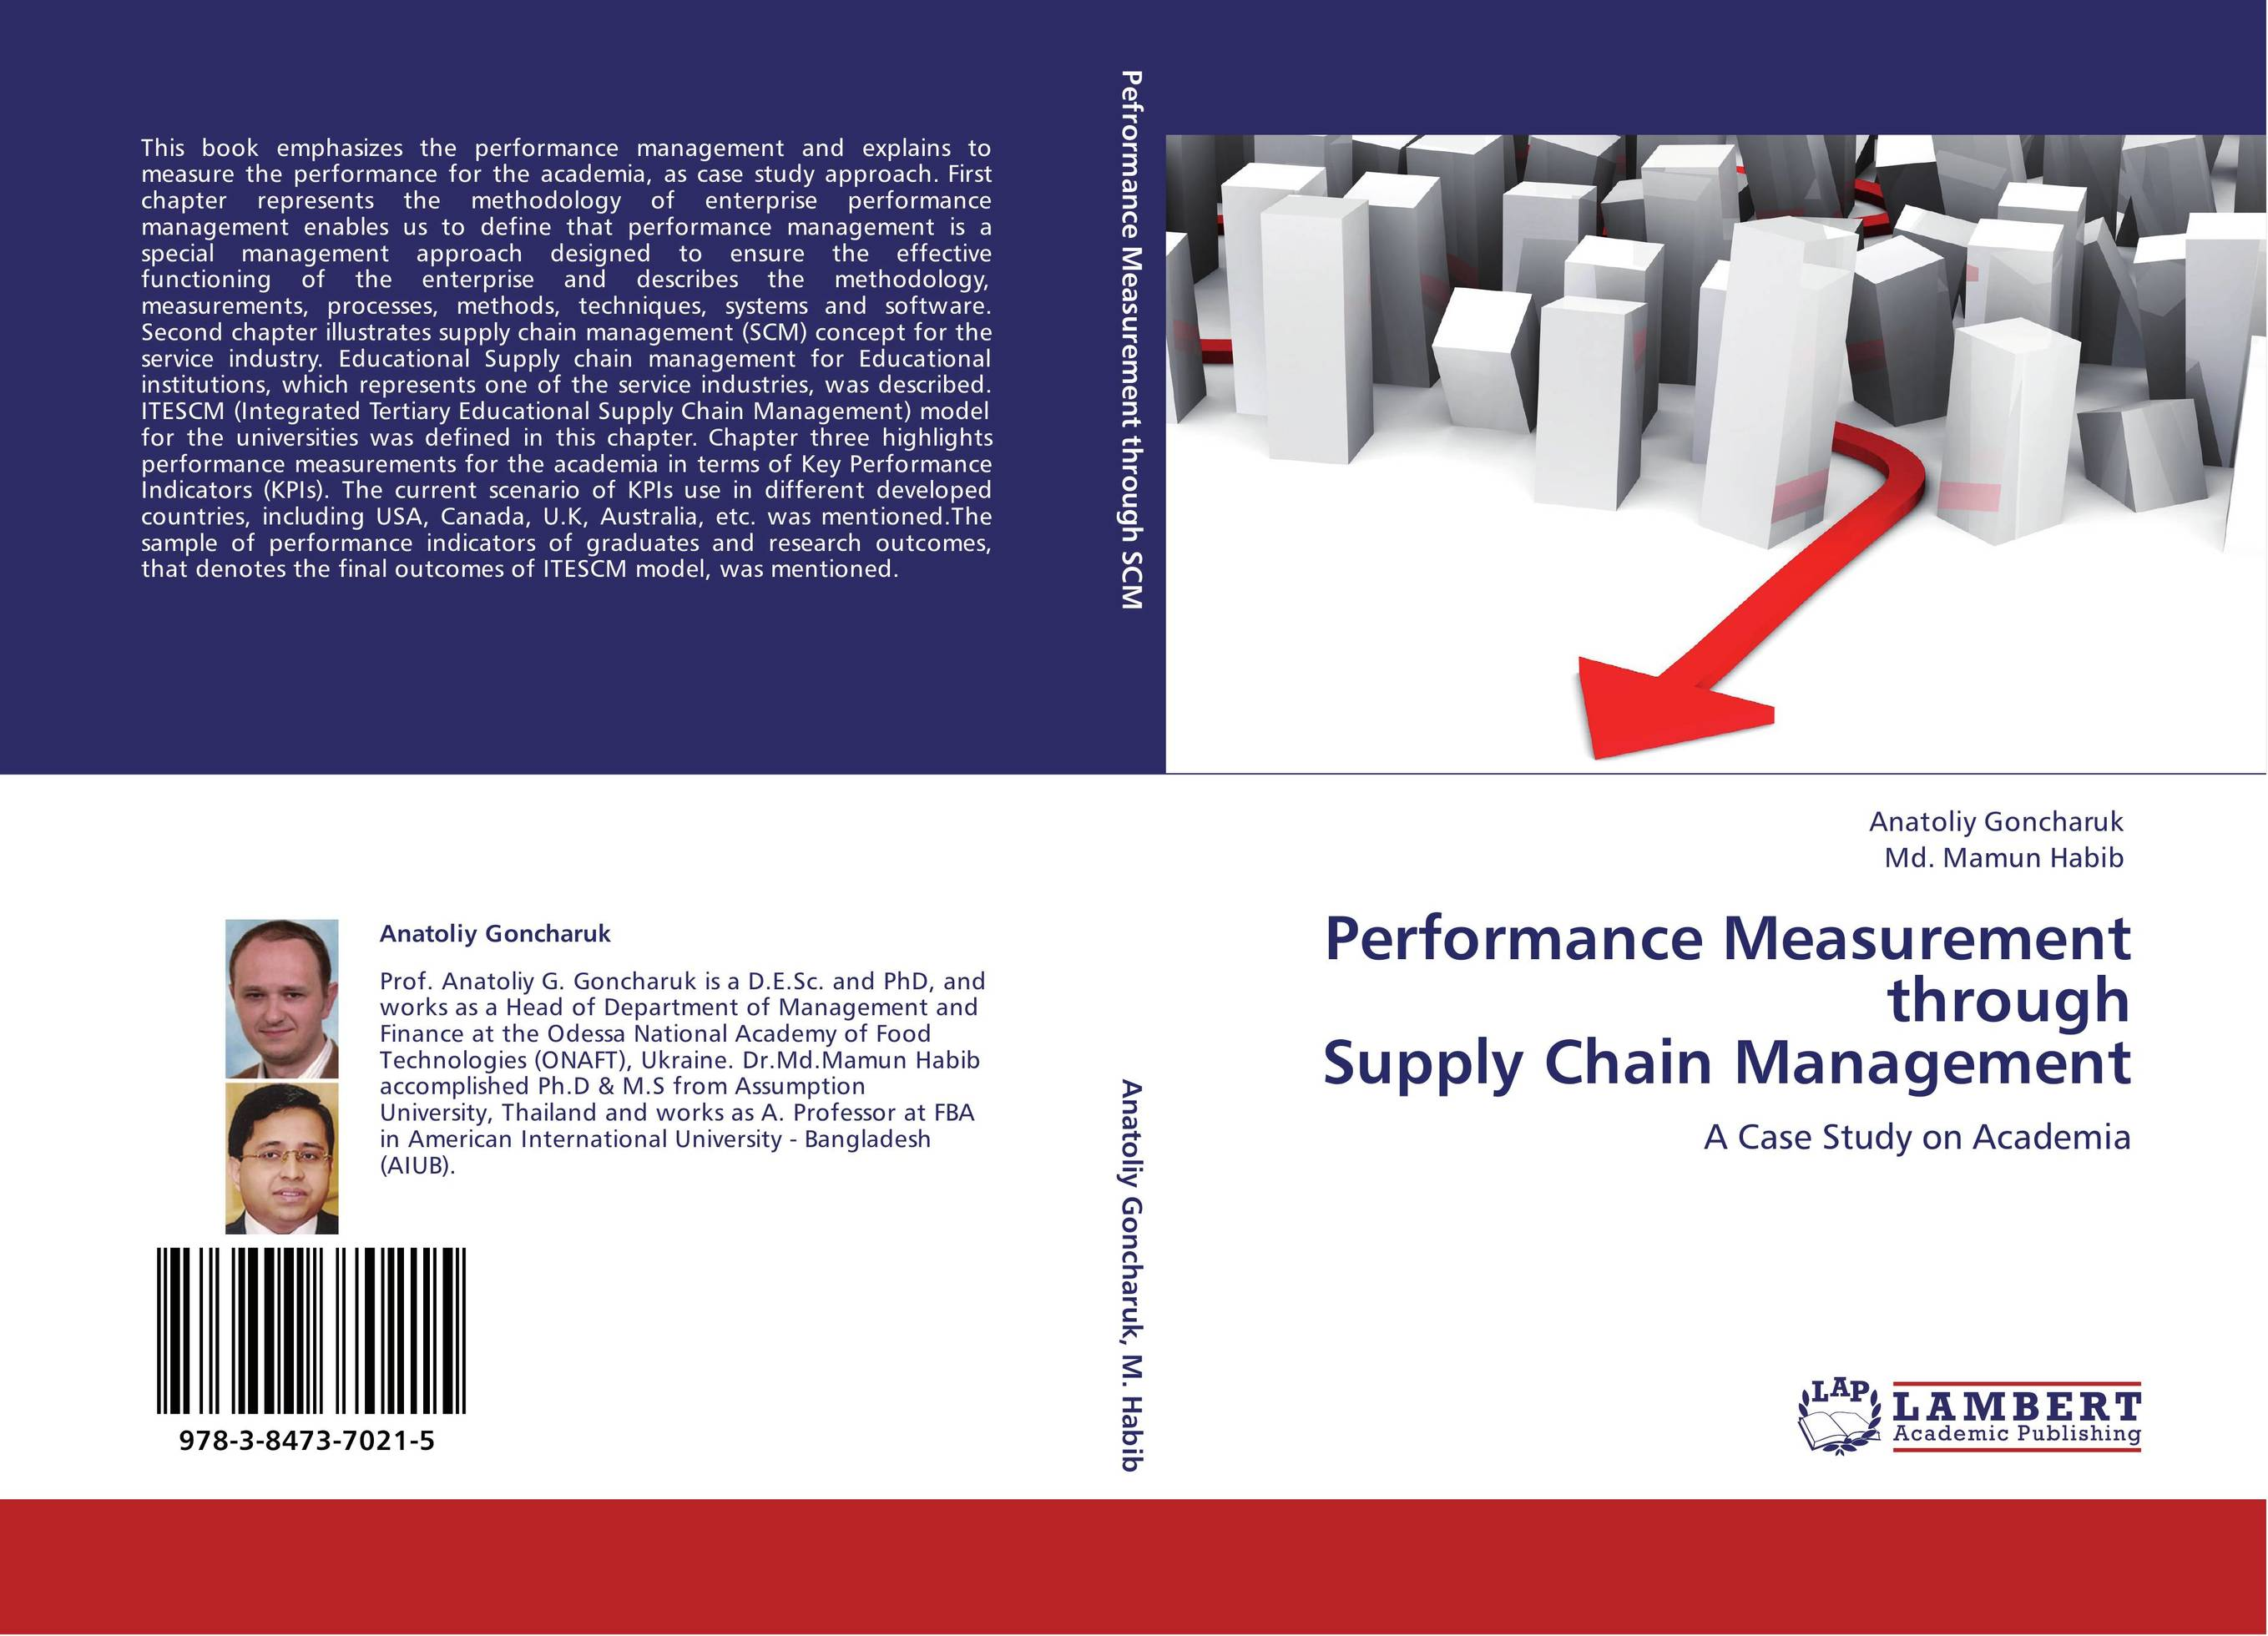 accounting supply chain management terms and ans Having one or more of the firm's activities perormed by another firm or individual in the supply or distribution chain total quality management (tqm) management method by which the organization seeks to excel on all dimensions, with the customer ultimately defining quality.